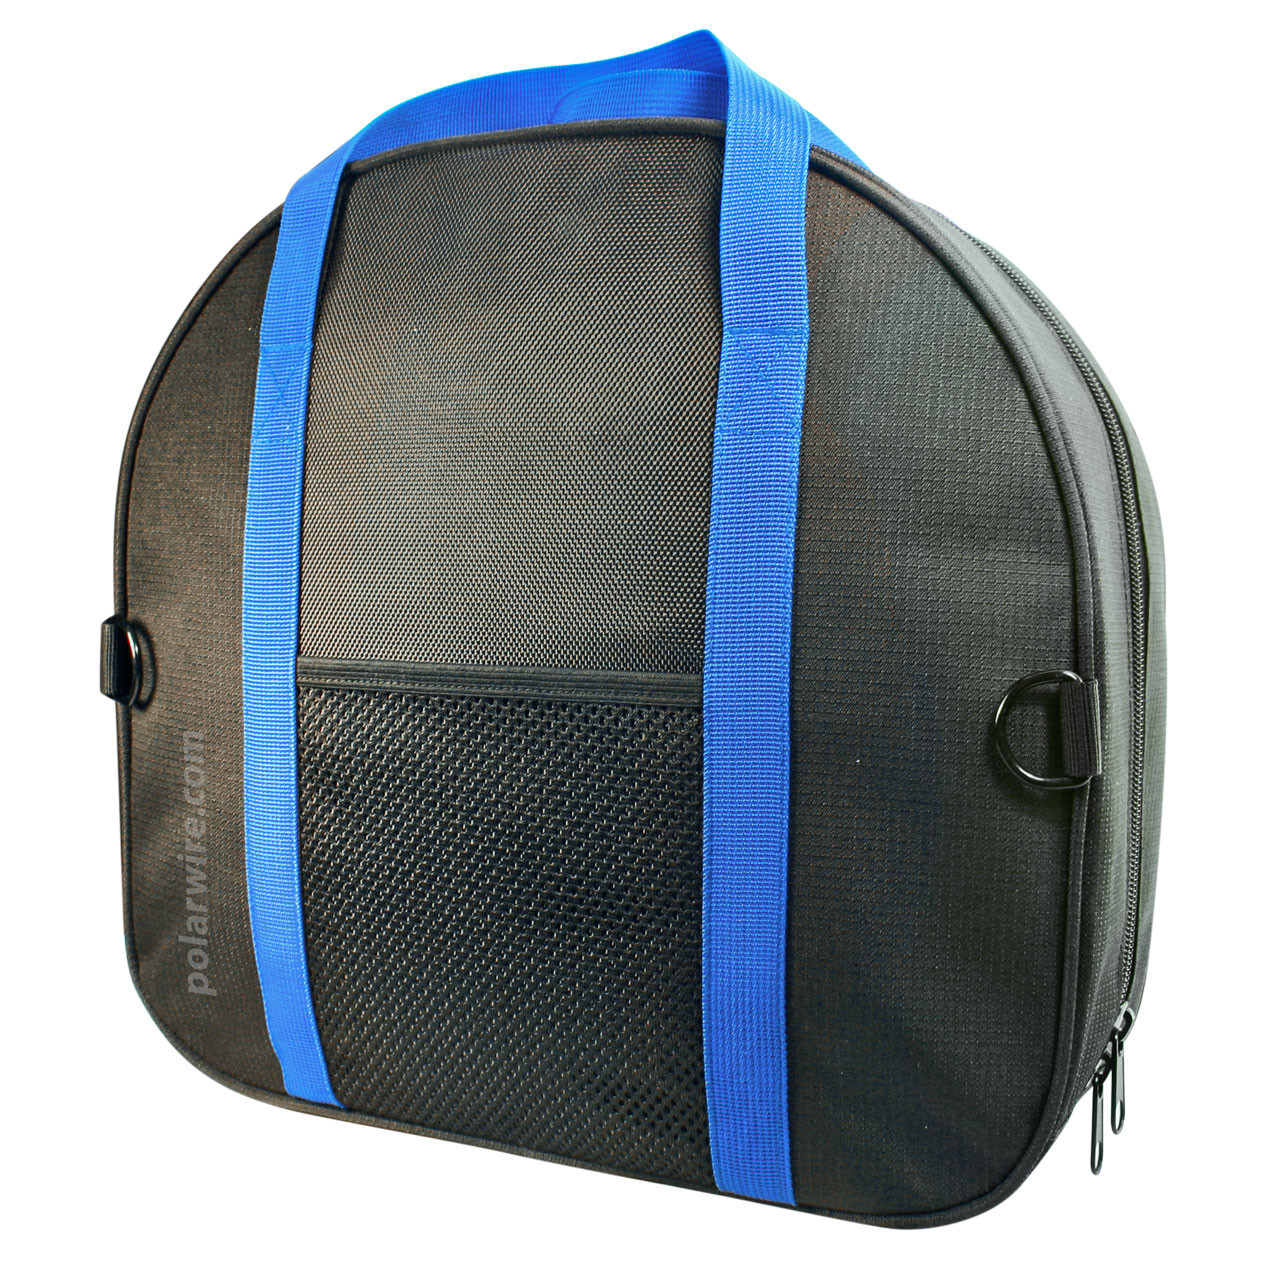 Includes a rugged nylon canvas jumper cable storage bag with a wide zippered opening, webbing handles and side pocket